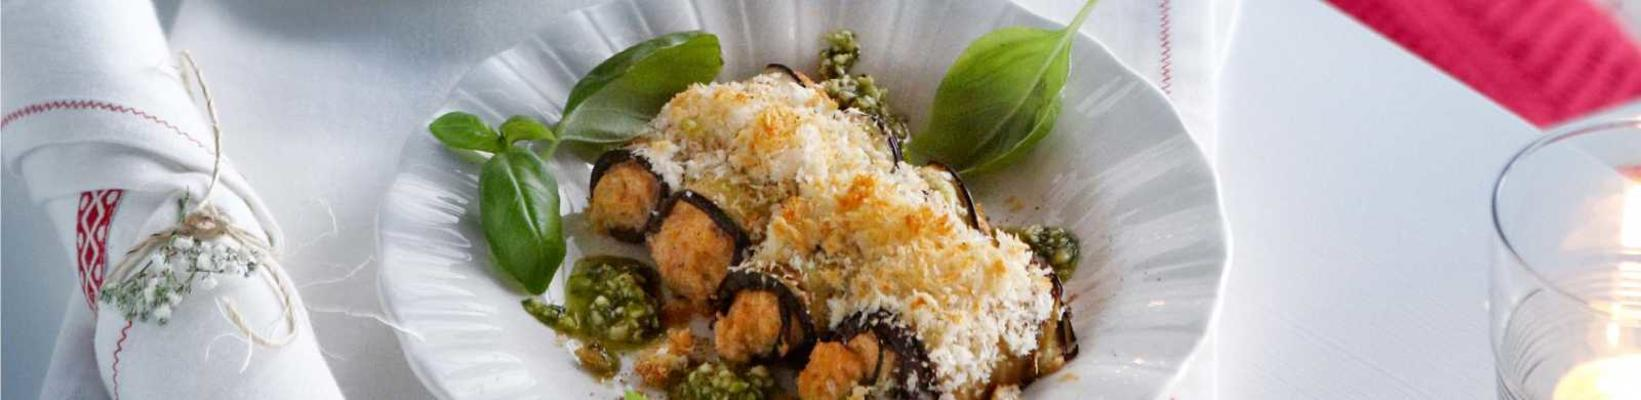 gratin aubergine rolls with ricotta and red pesto